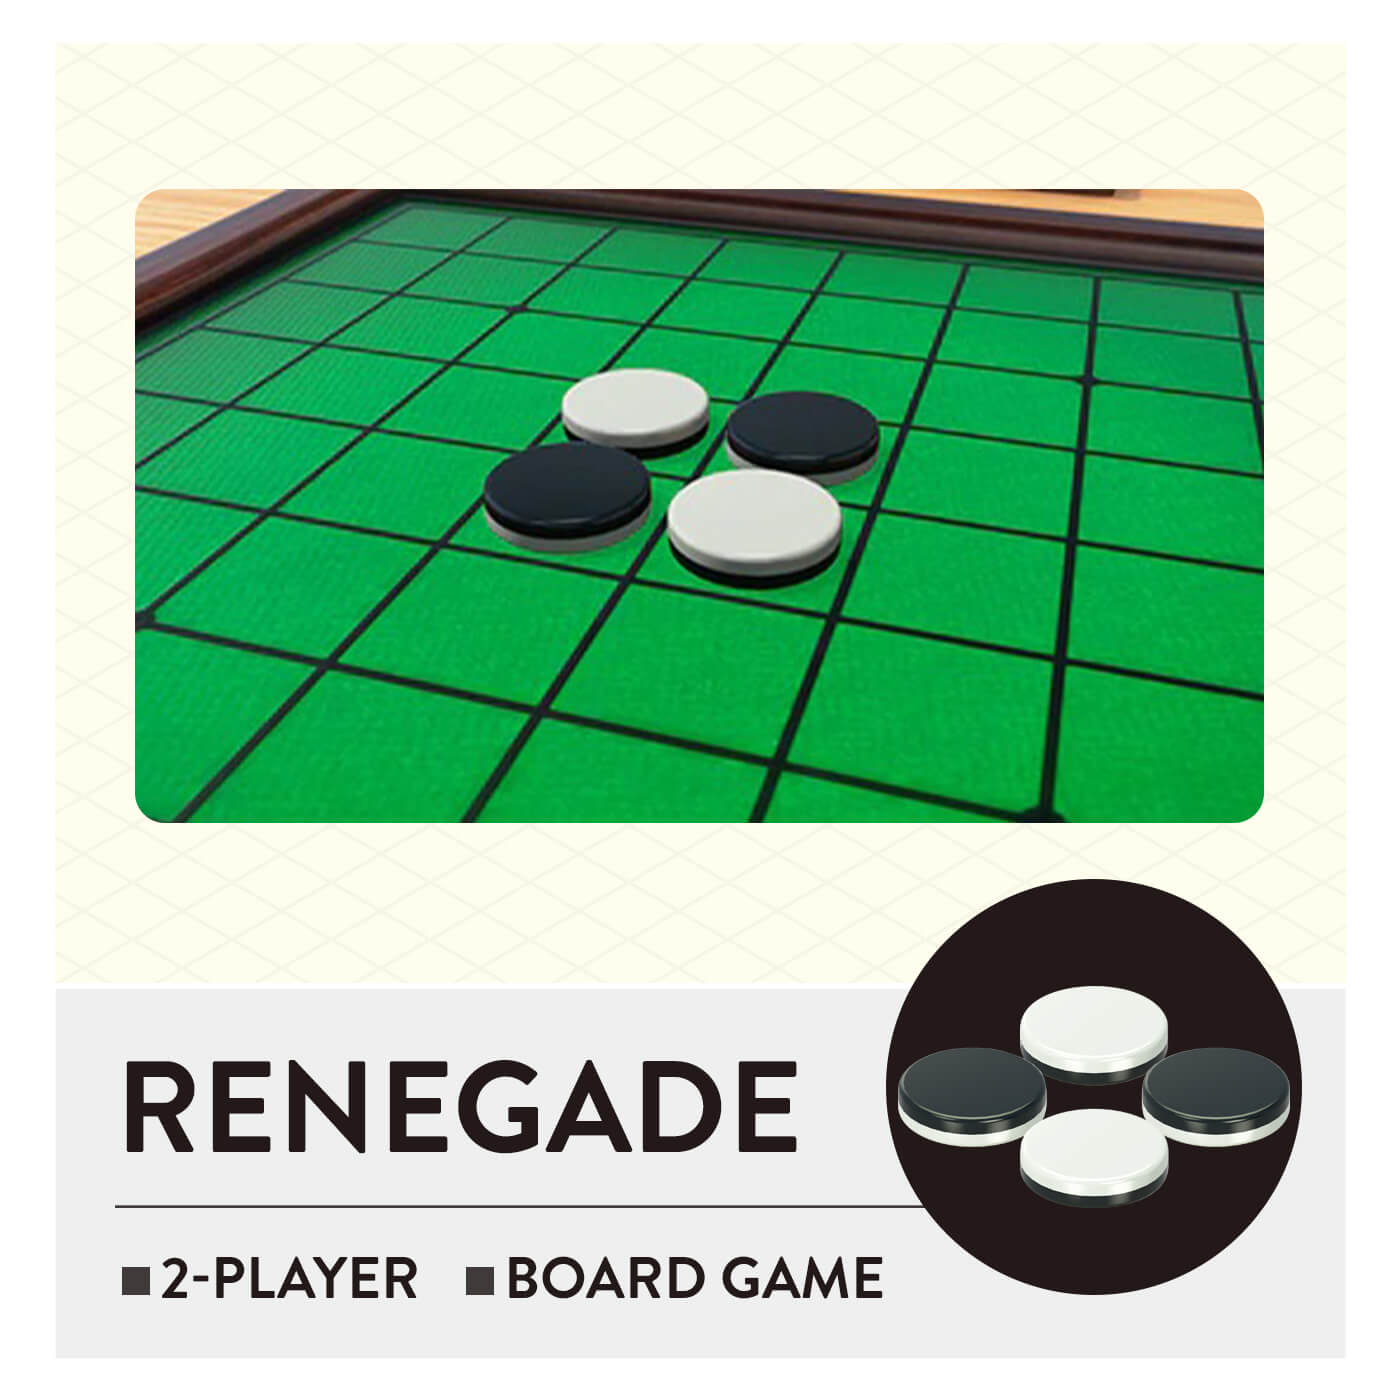 51 Worldwide Games - Renegade